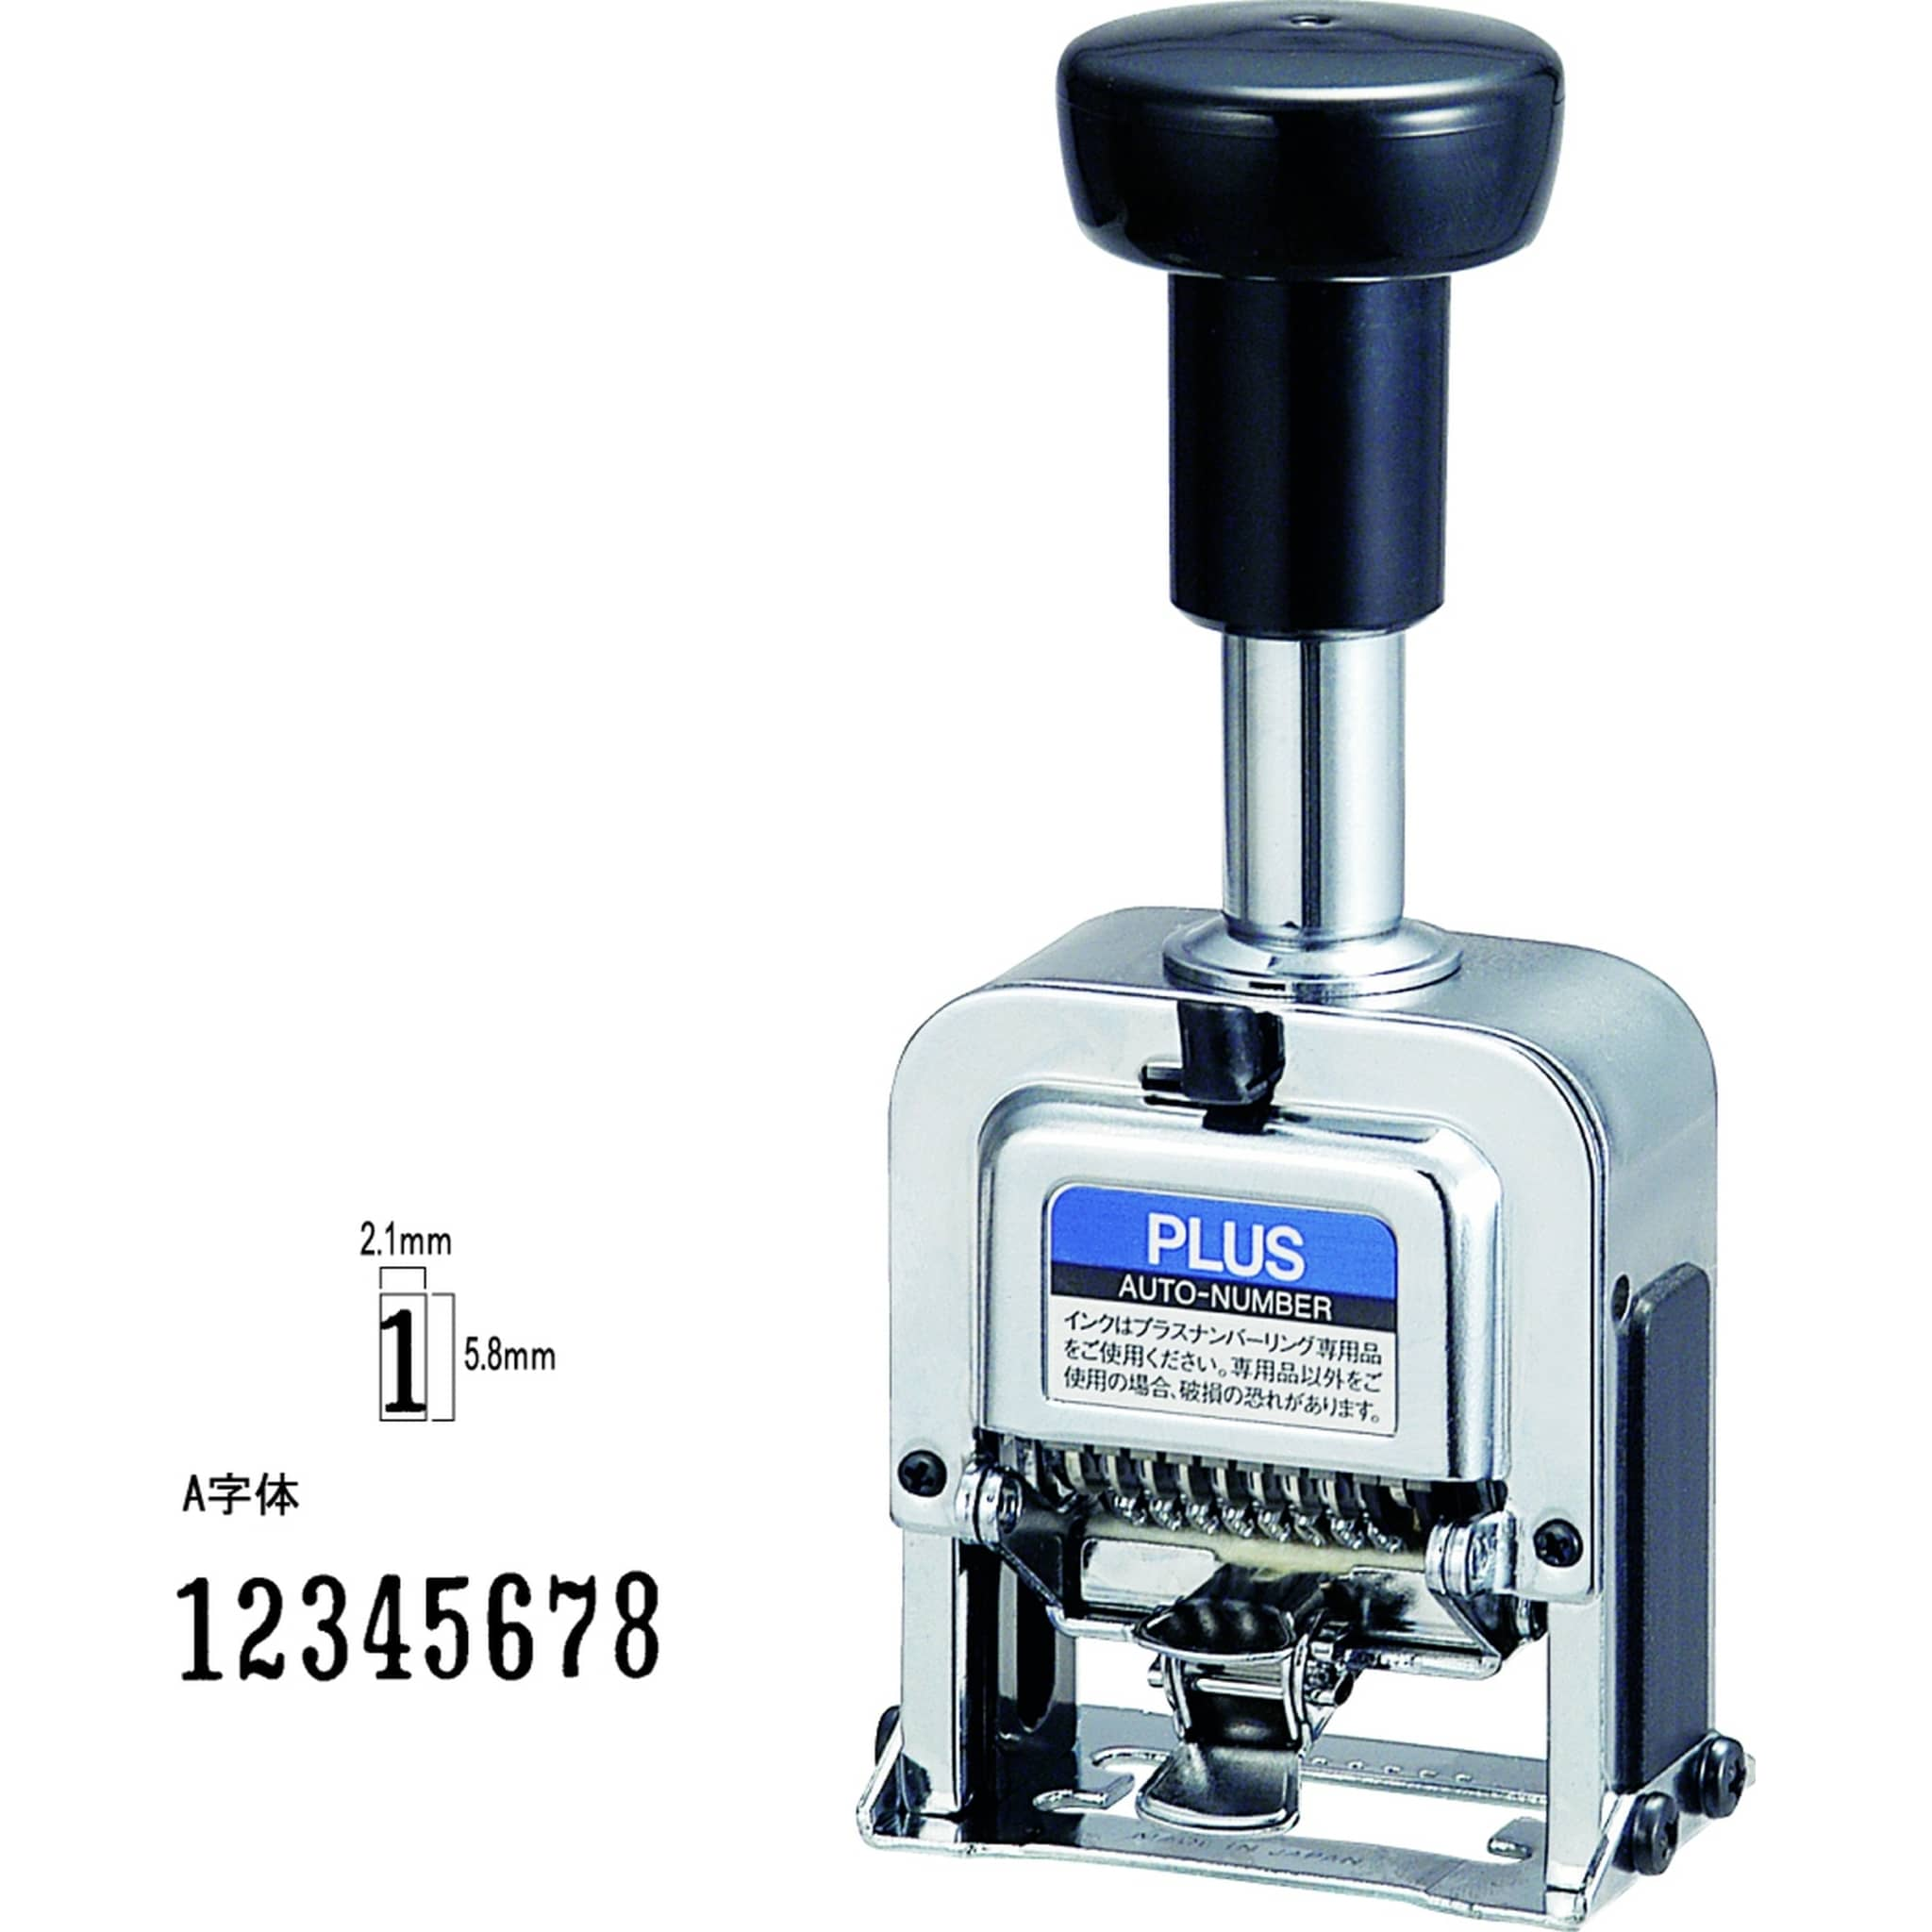 PLUS E 8 Wheel Automatic Numbering Machine $336.80 incl. gst